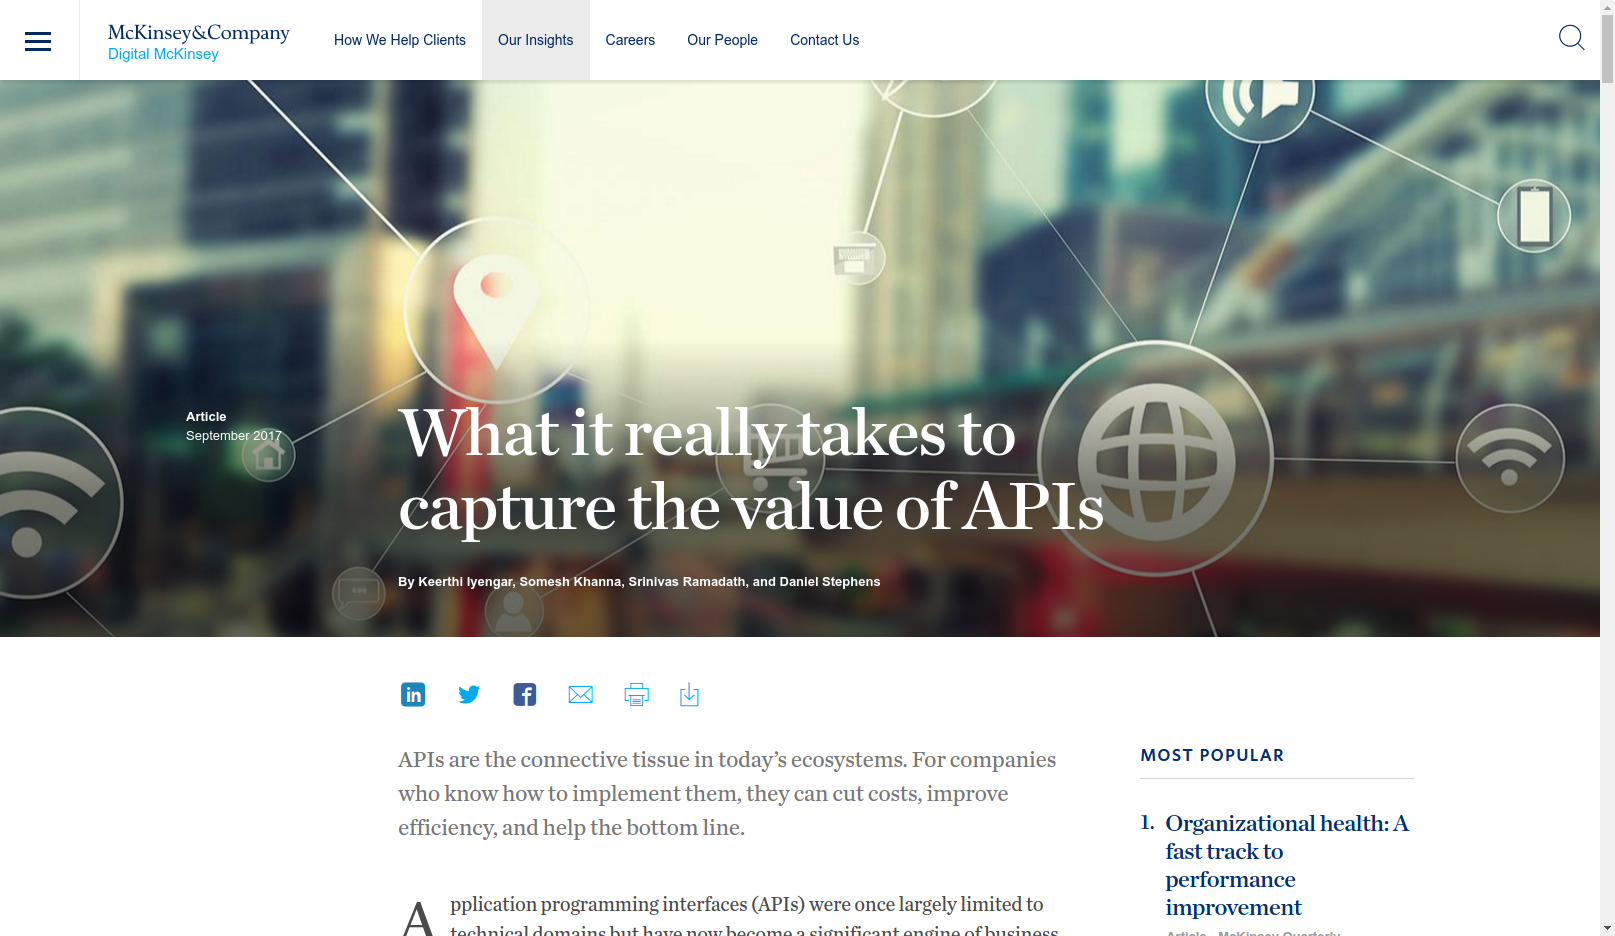 6 ways to ensure APIs live up to their promises